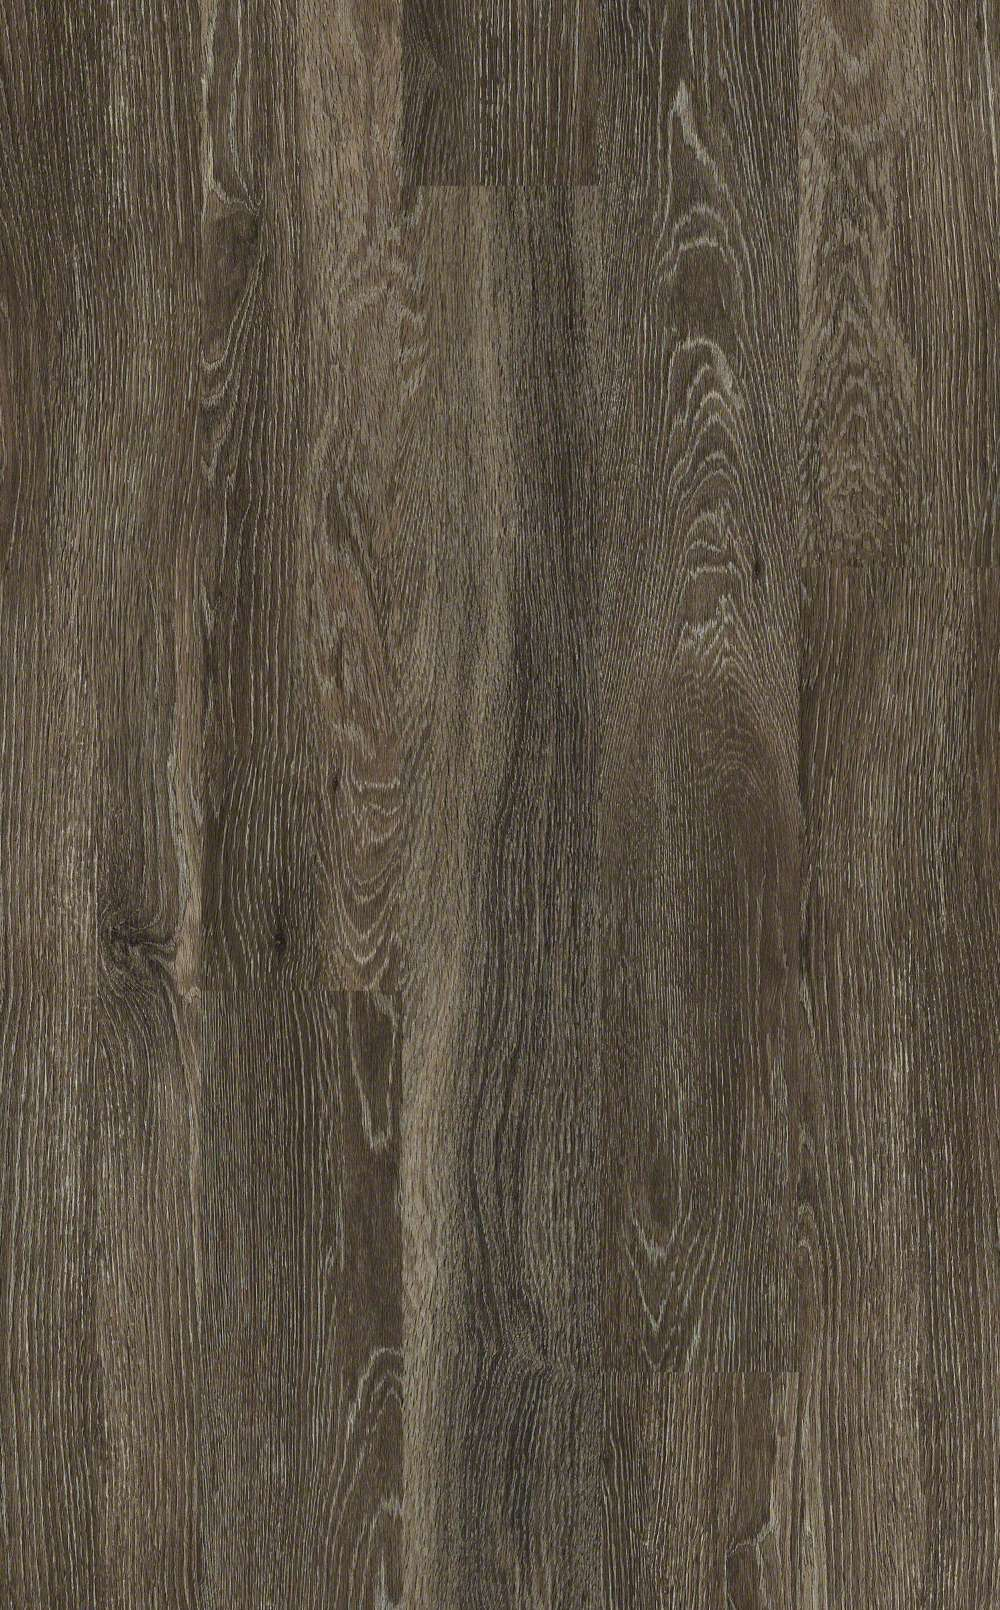 "Shaw - Mila  Width: 5.90""  Length: 48.03""  Thickness: 17/64""  Wear Layer: 12 Mil."